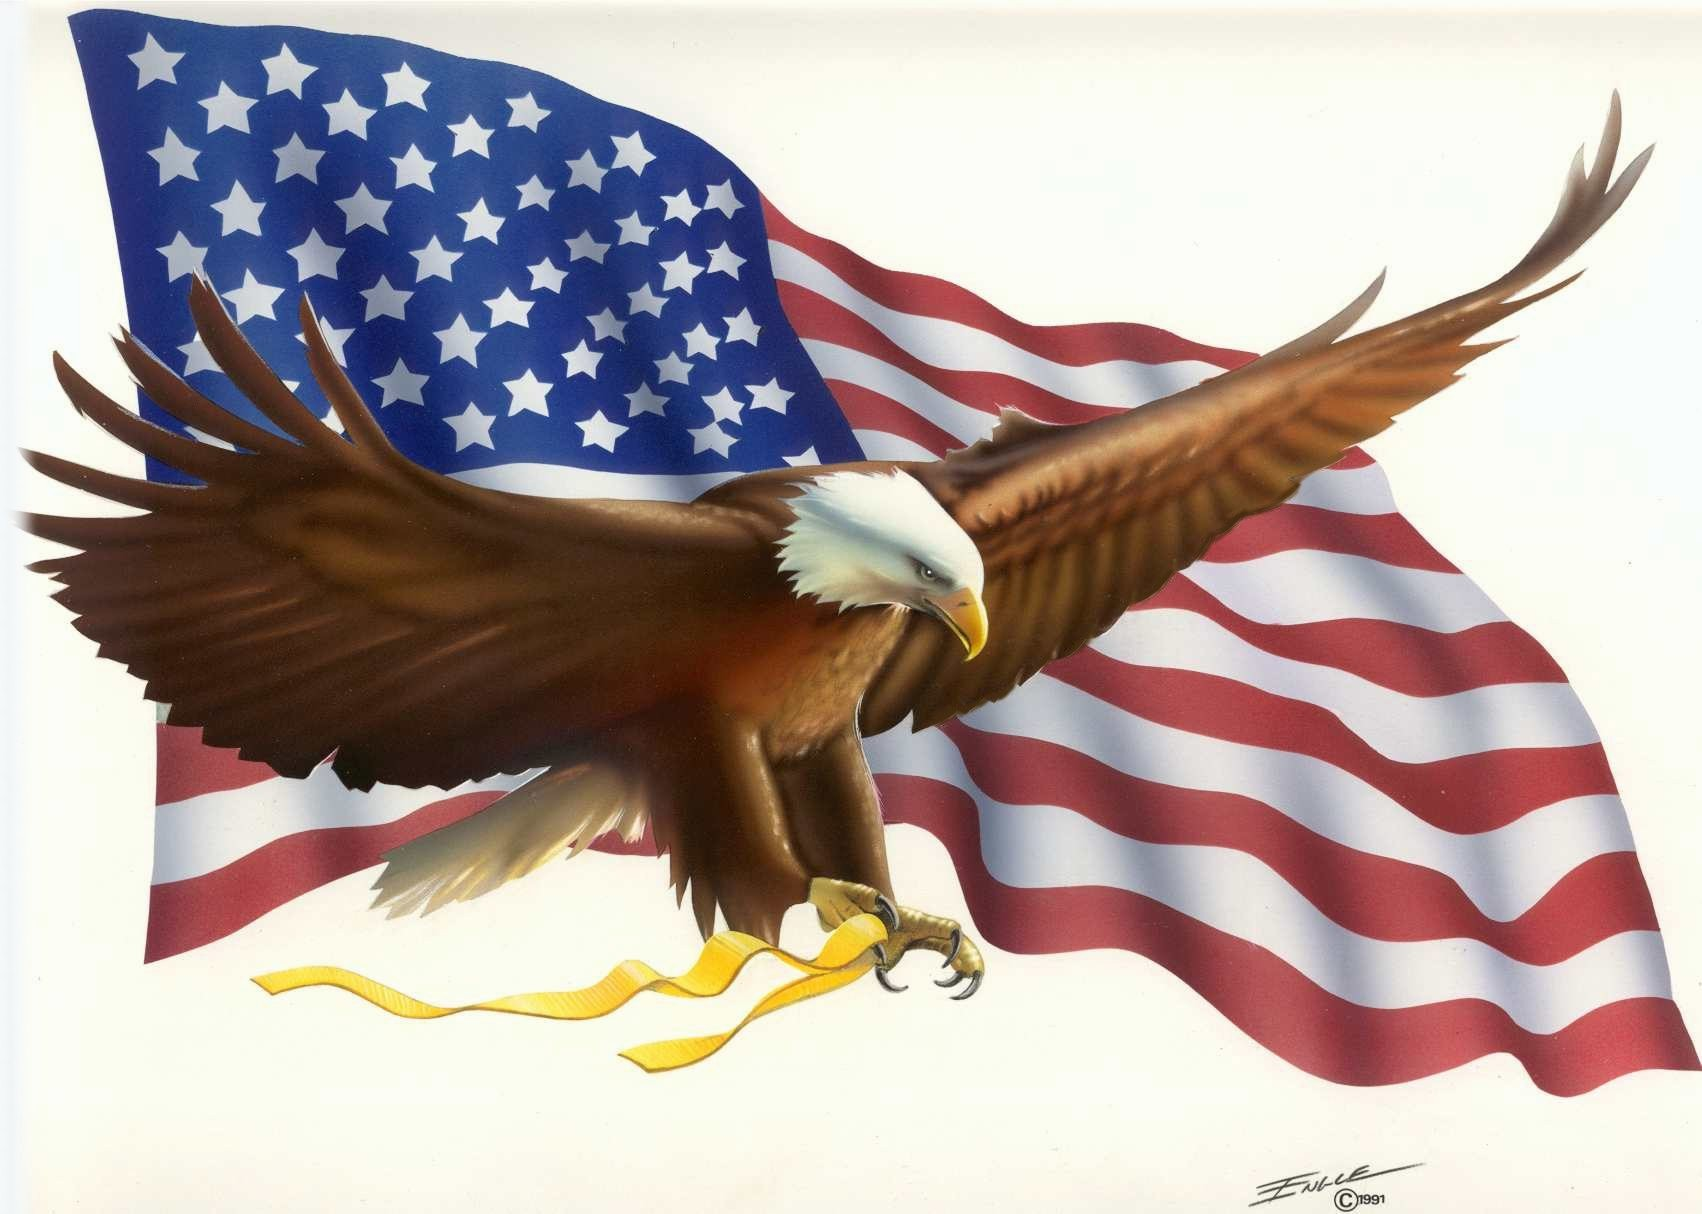 Free clipart american flag and eagle clipart freeuse Eagle Flag Engle Bob | Free Images at Clker.com - vector clip art ... clipart freeuse